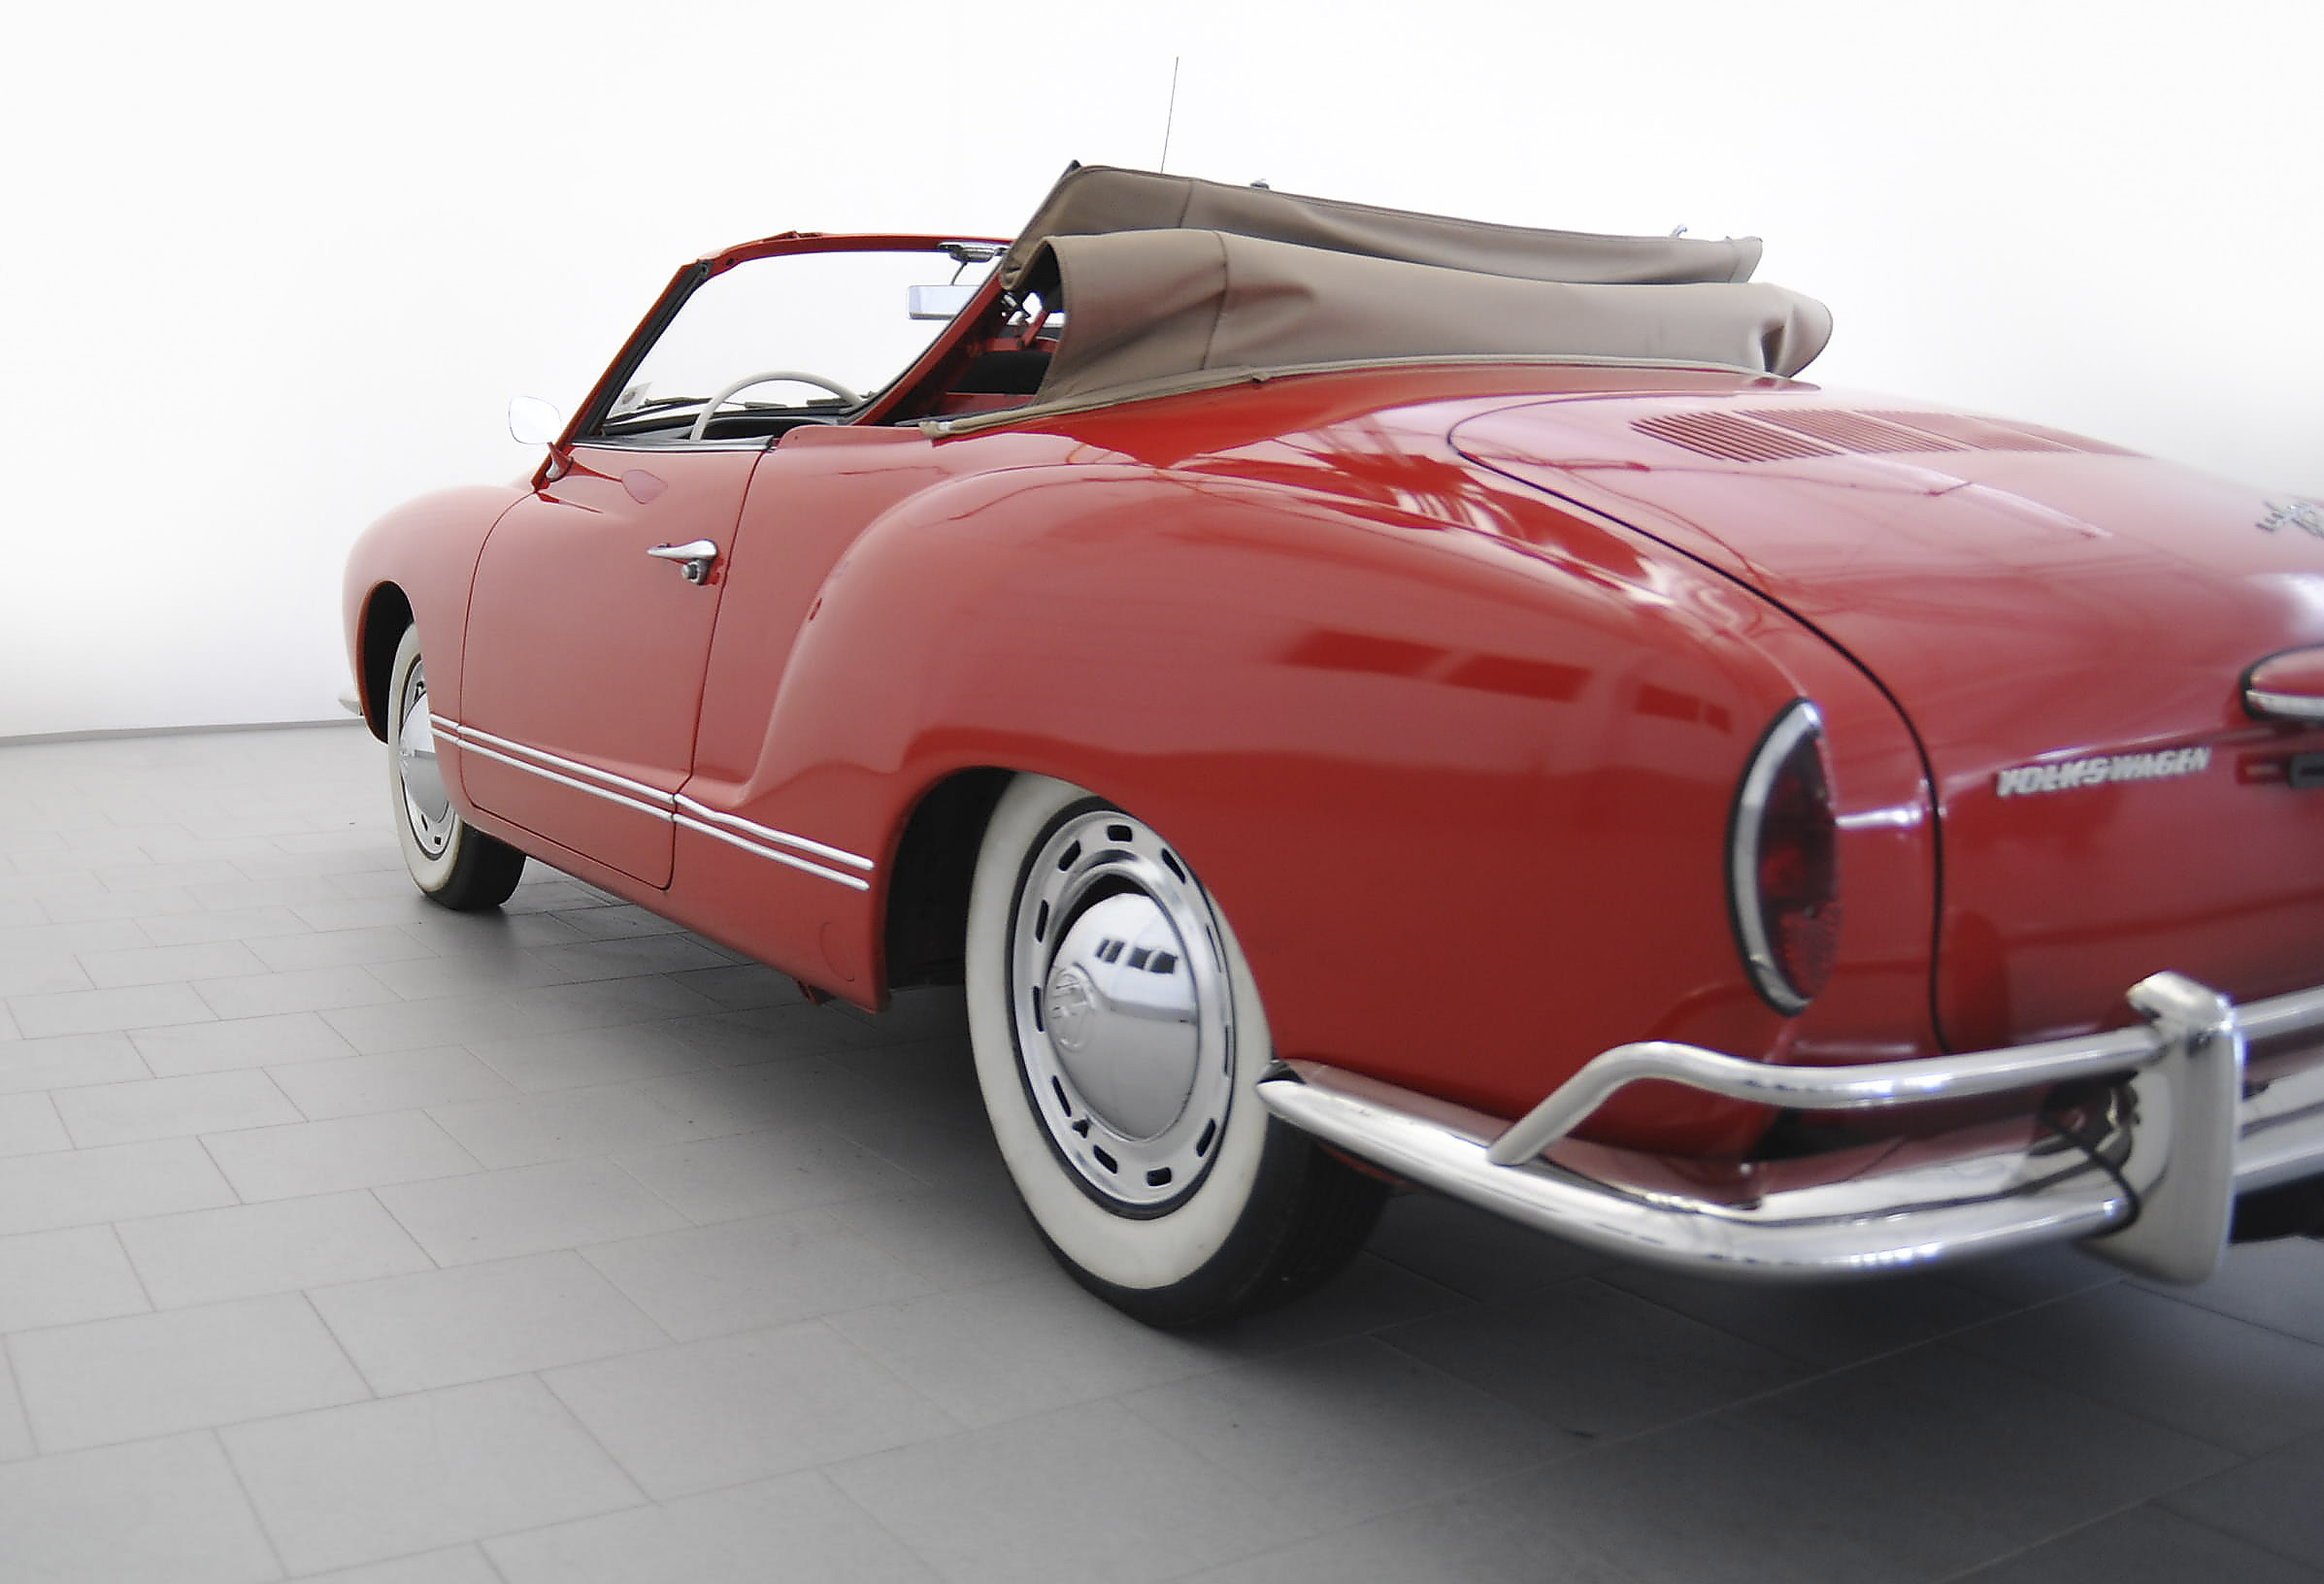 volkswagen karmann ghia classicbid. Black Bedroom Furniture Sets. Home Design Ideas